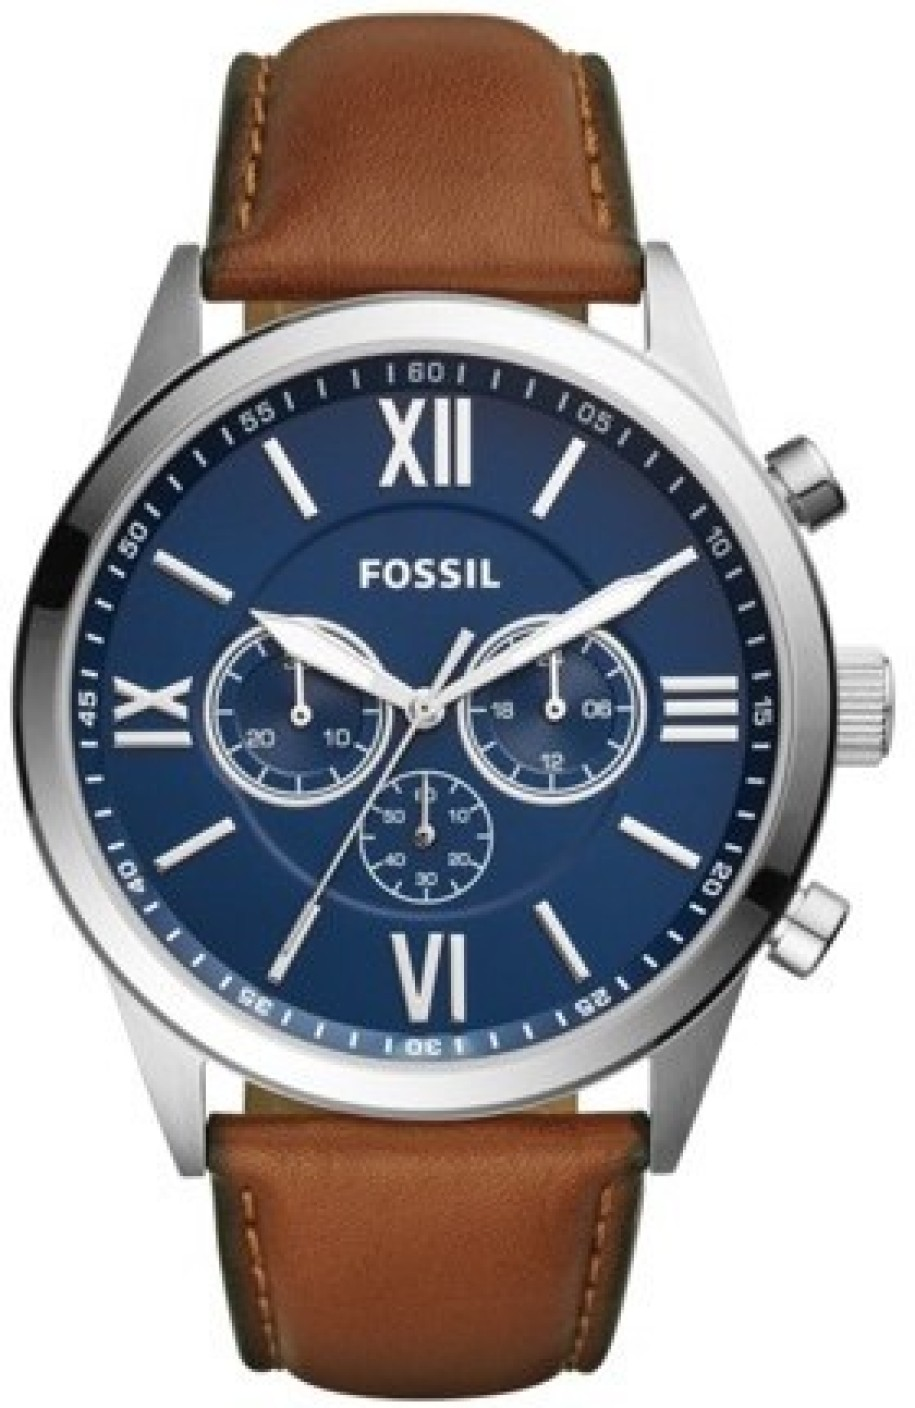 Fossil bq2125 watch for men buy fossil bq2125 watch for men bq2125 online at best prices for Watches for men